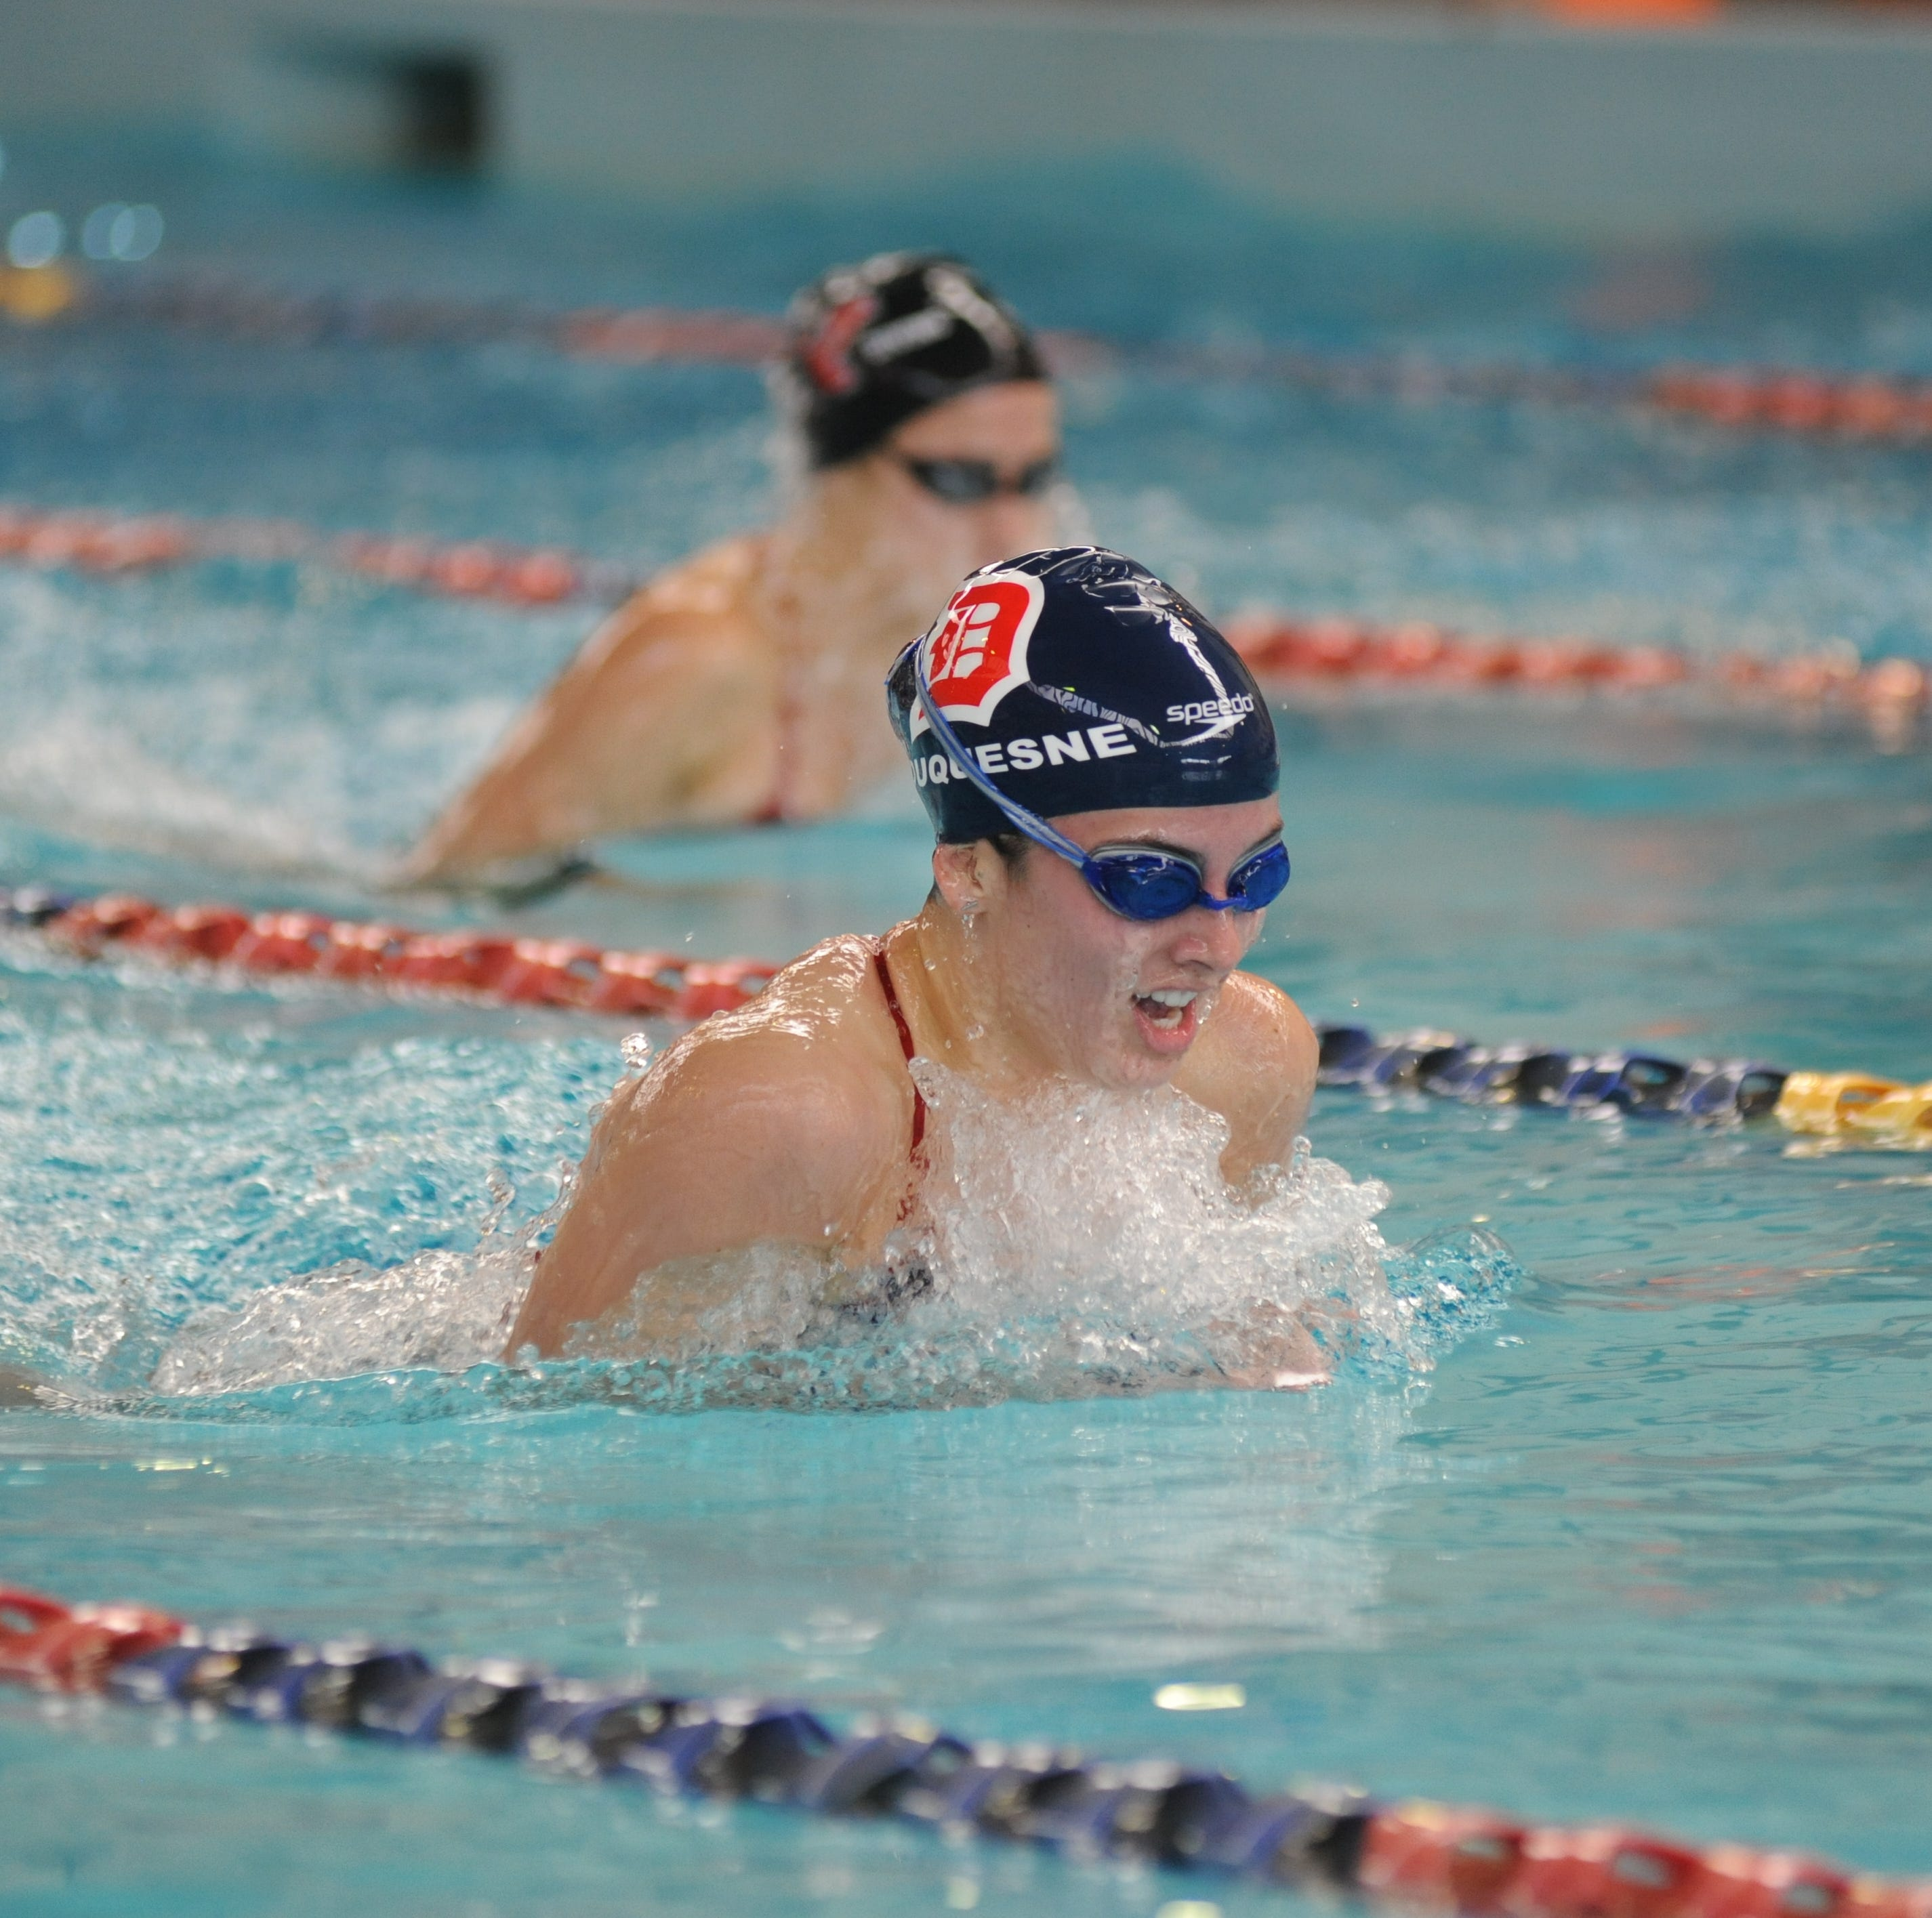 Chambersburg's Stauffer continues strong swim career at Duquesne